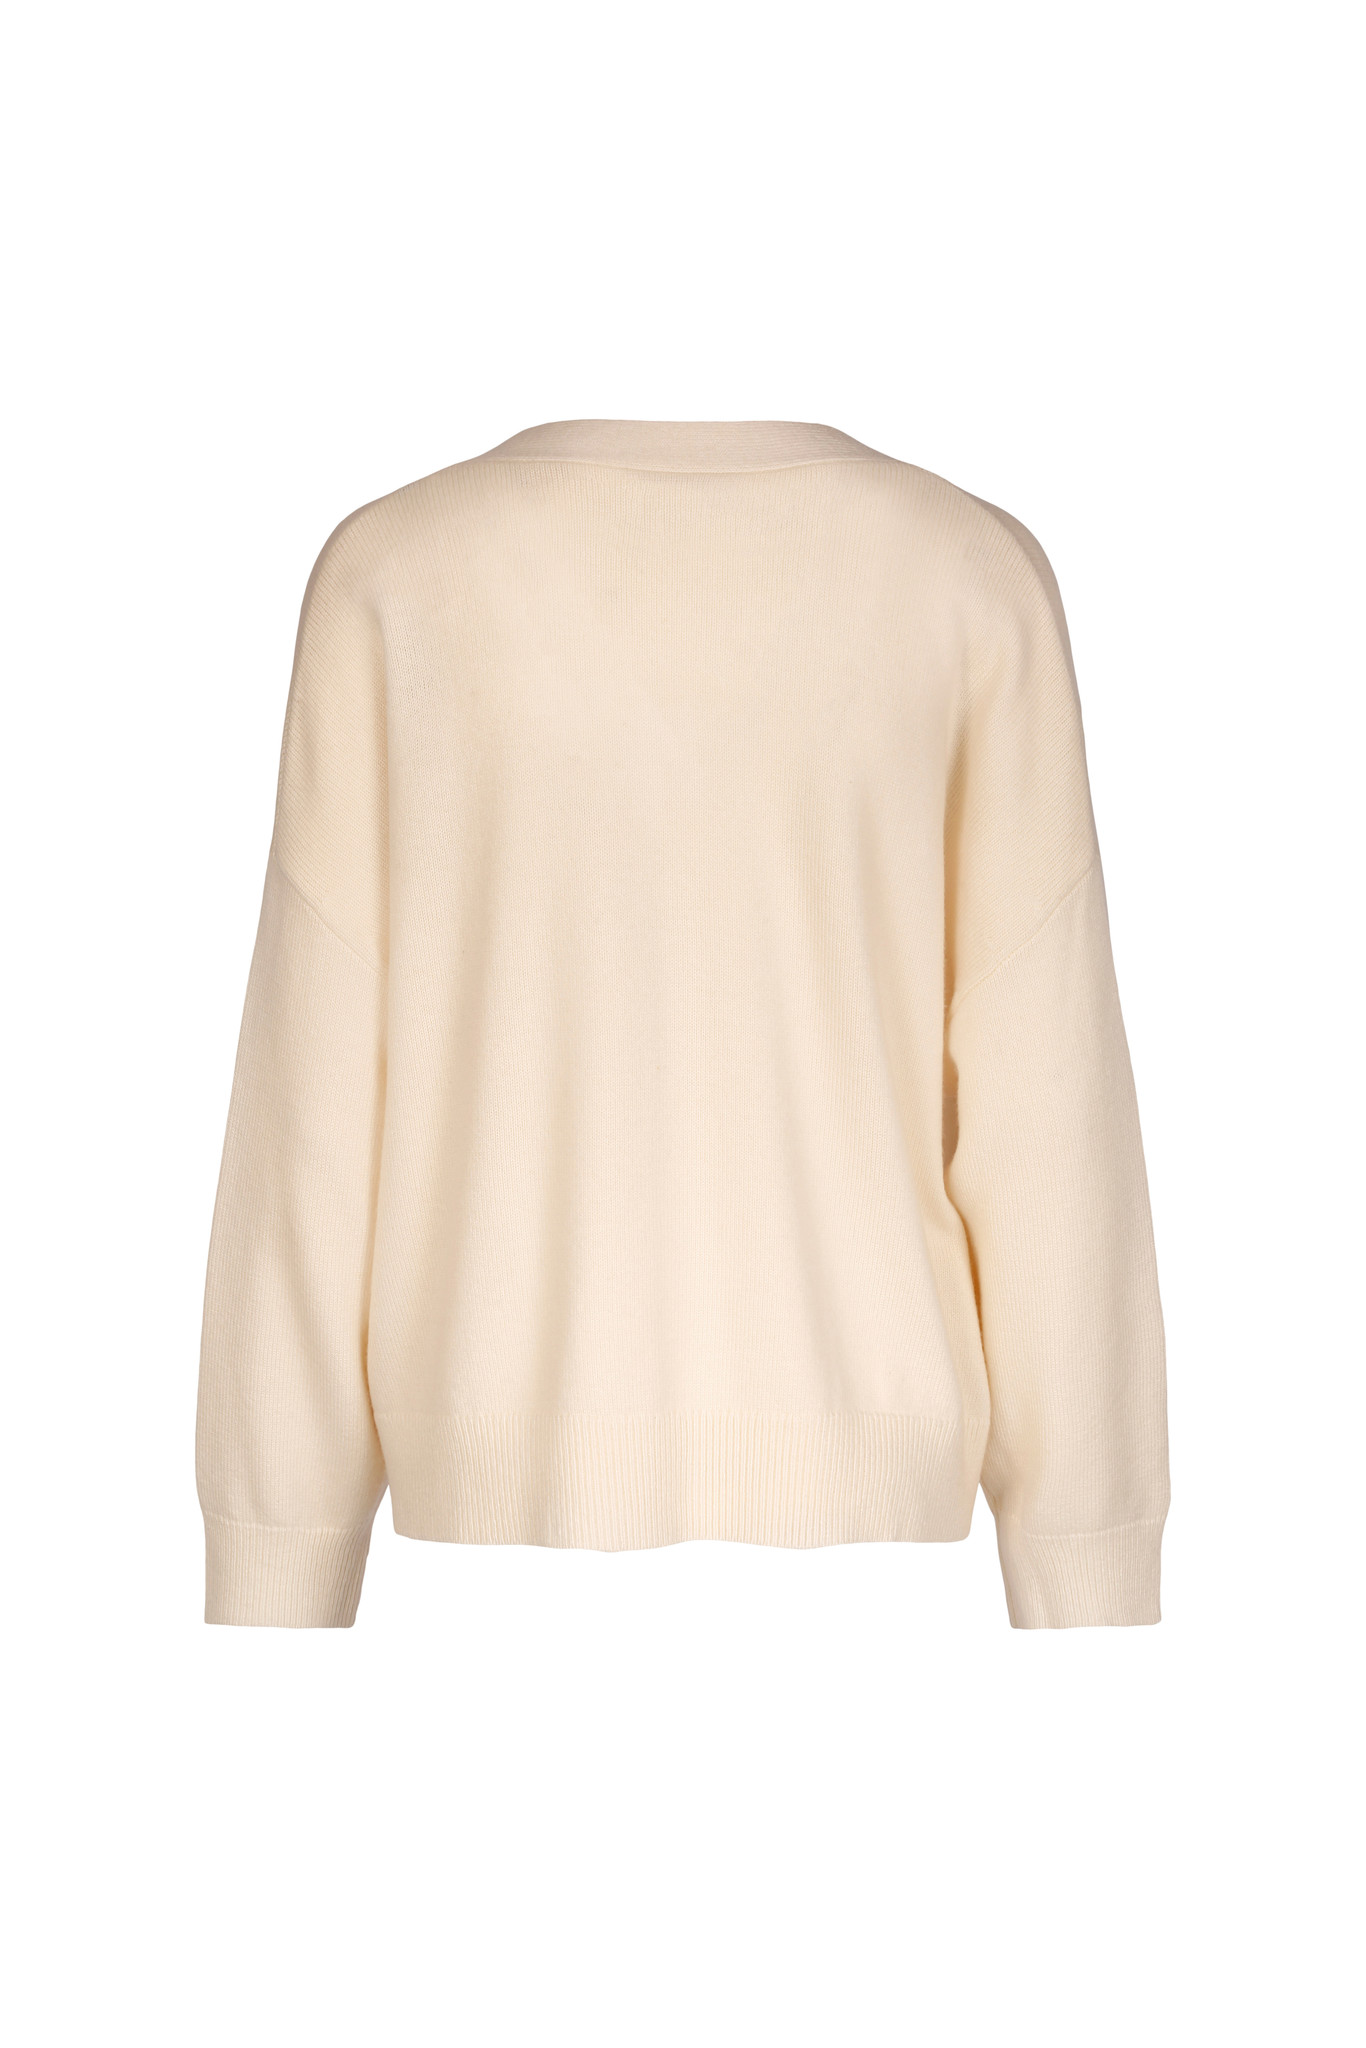 Moses Cardigan - Off White-2